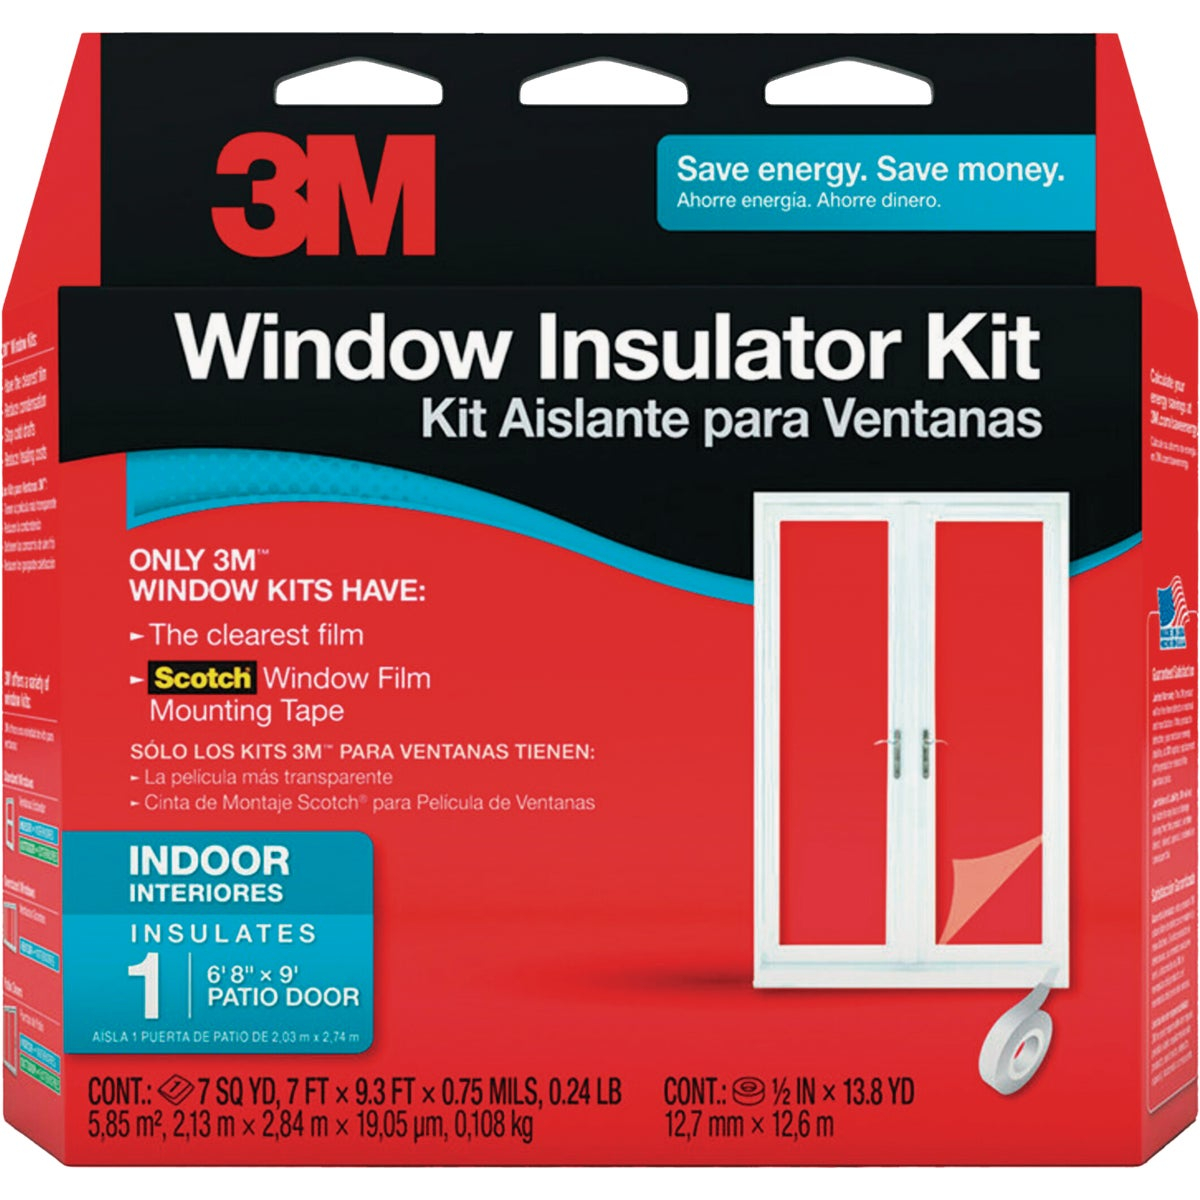 84X112 IND INSULATOR KIT - 2144W-6 by 3m Co